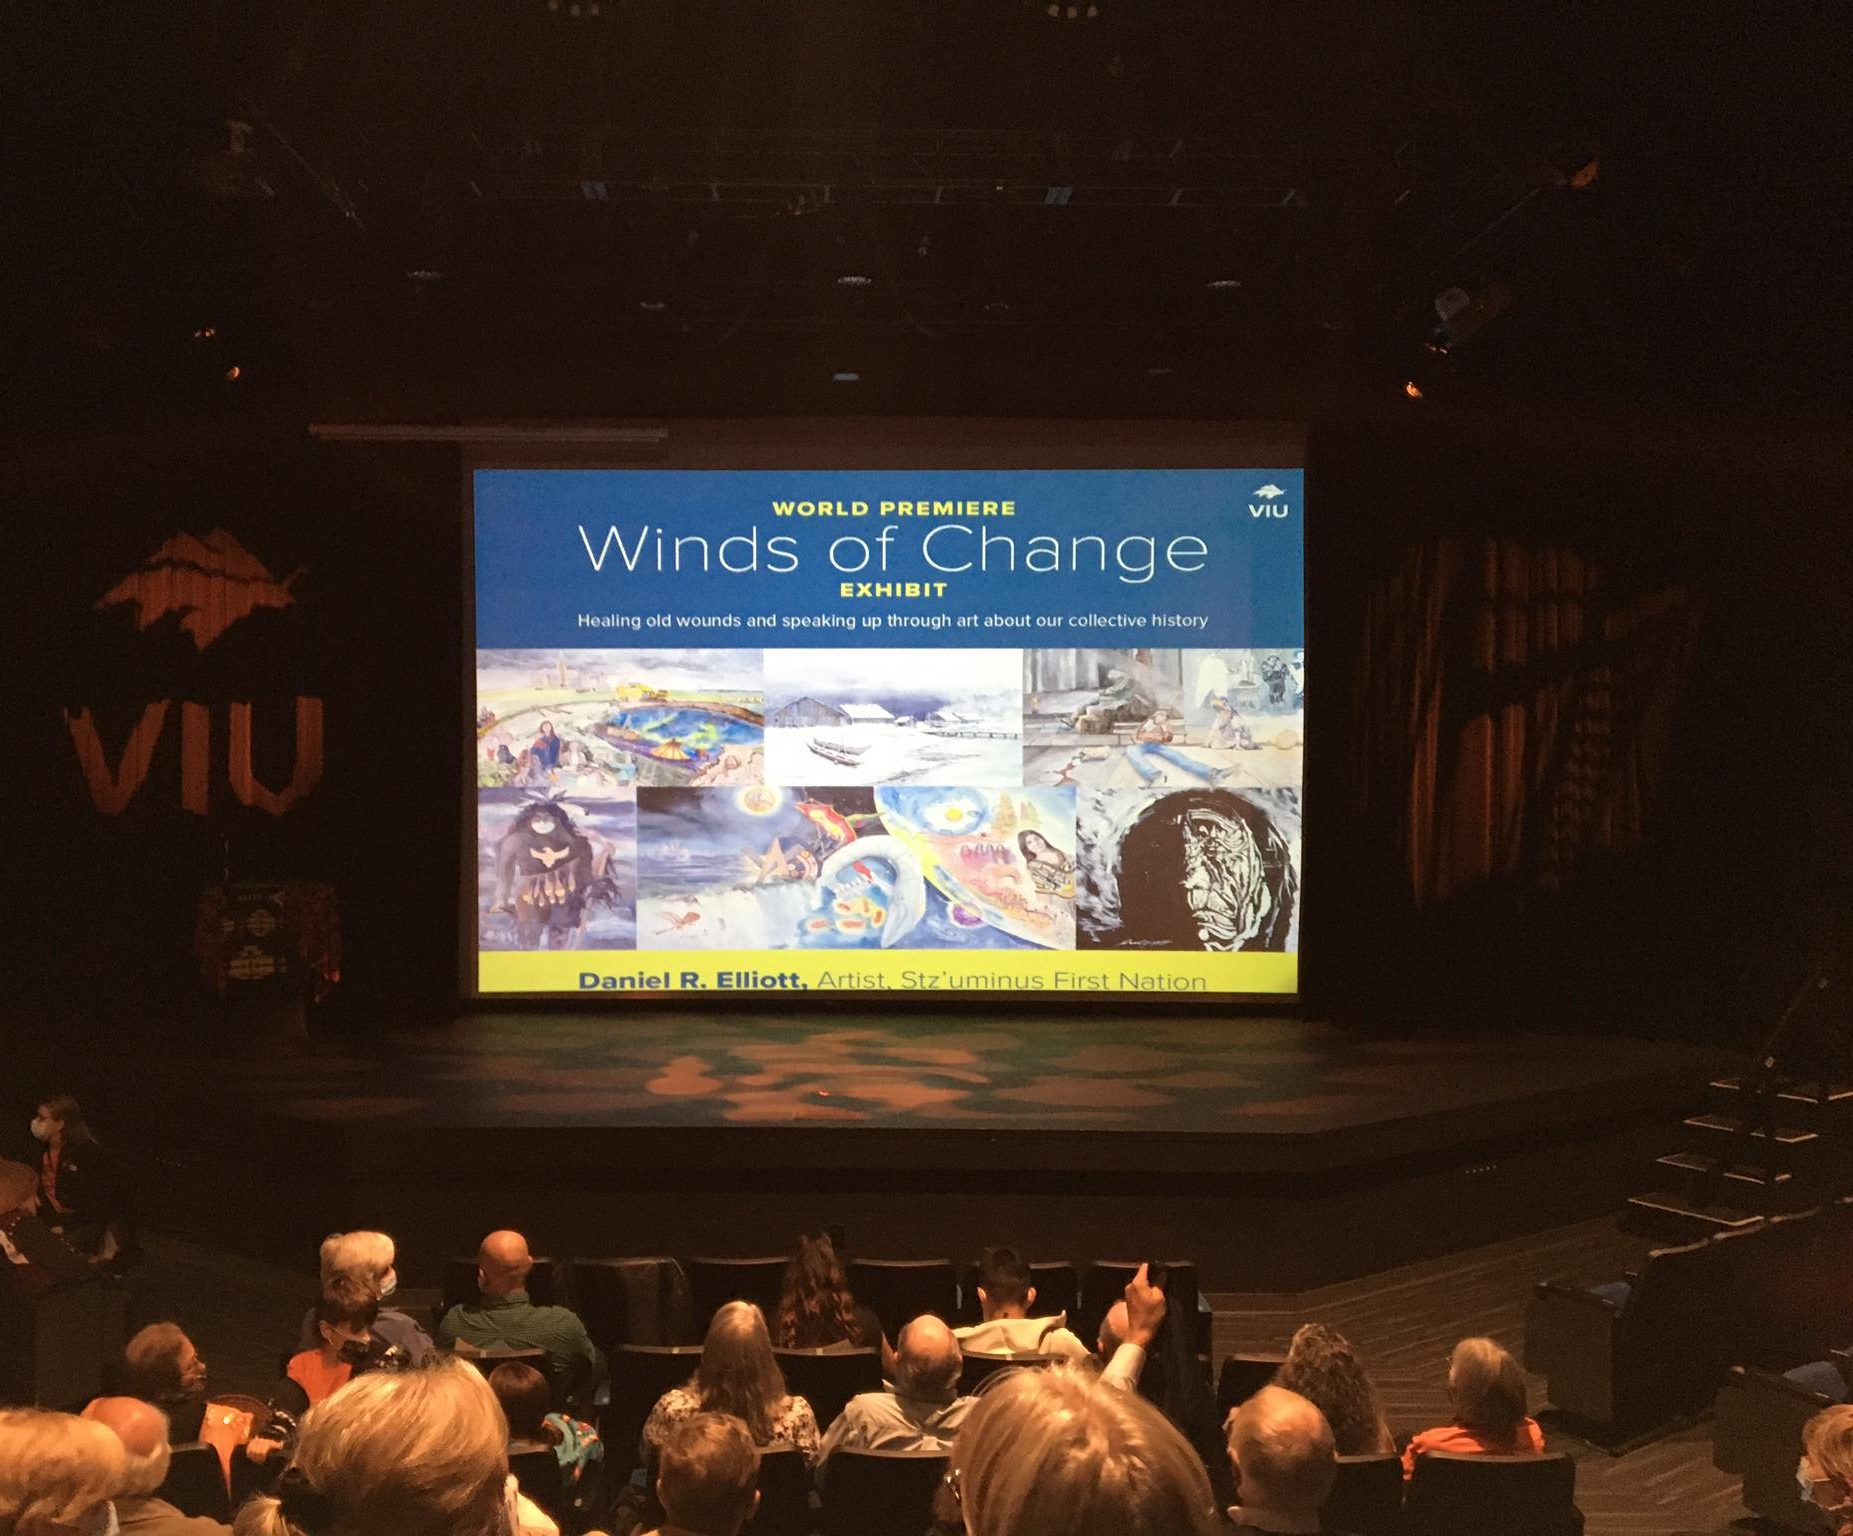 Image shows Winds of Changes poster on theatre stage